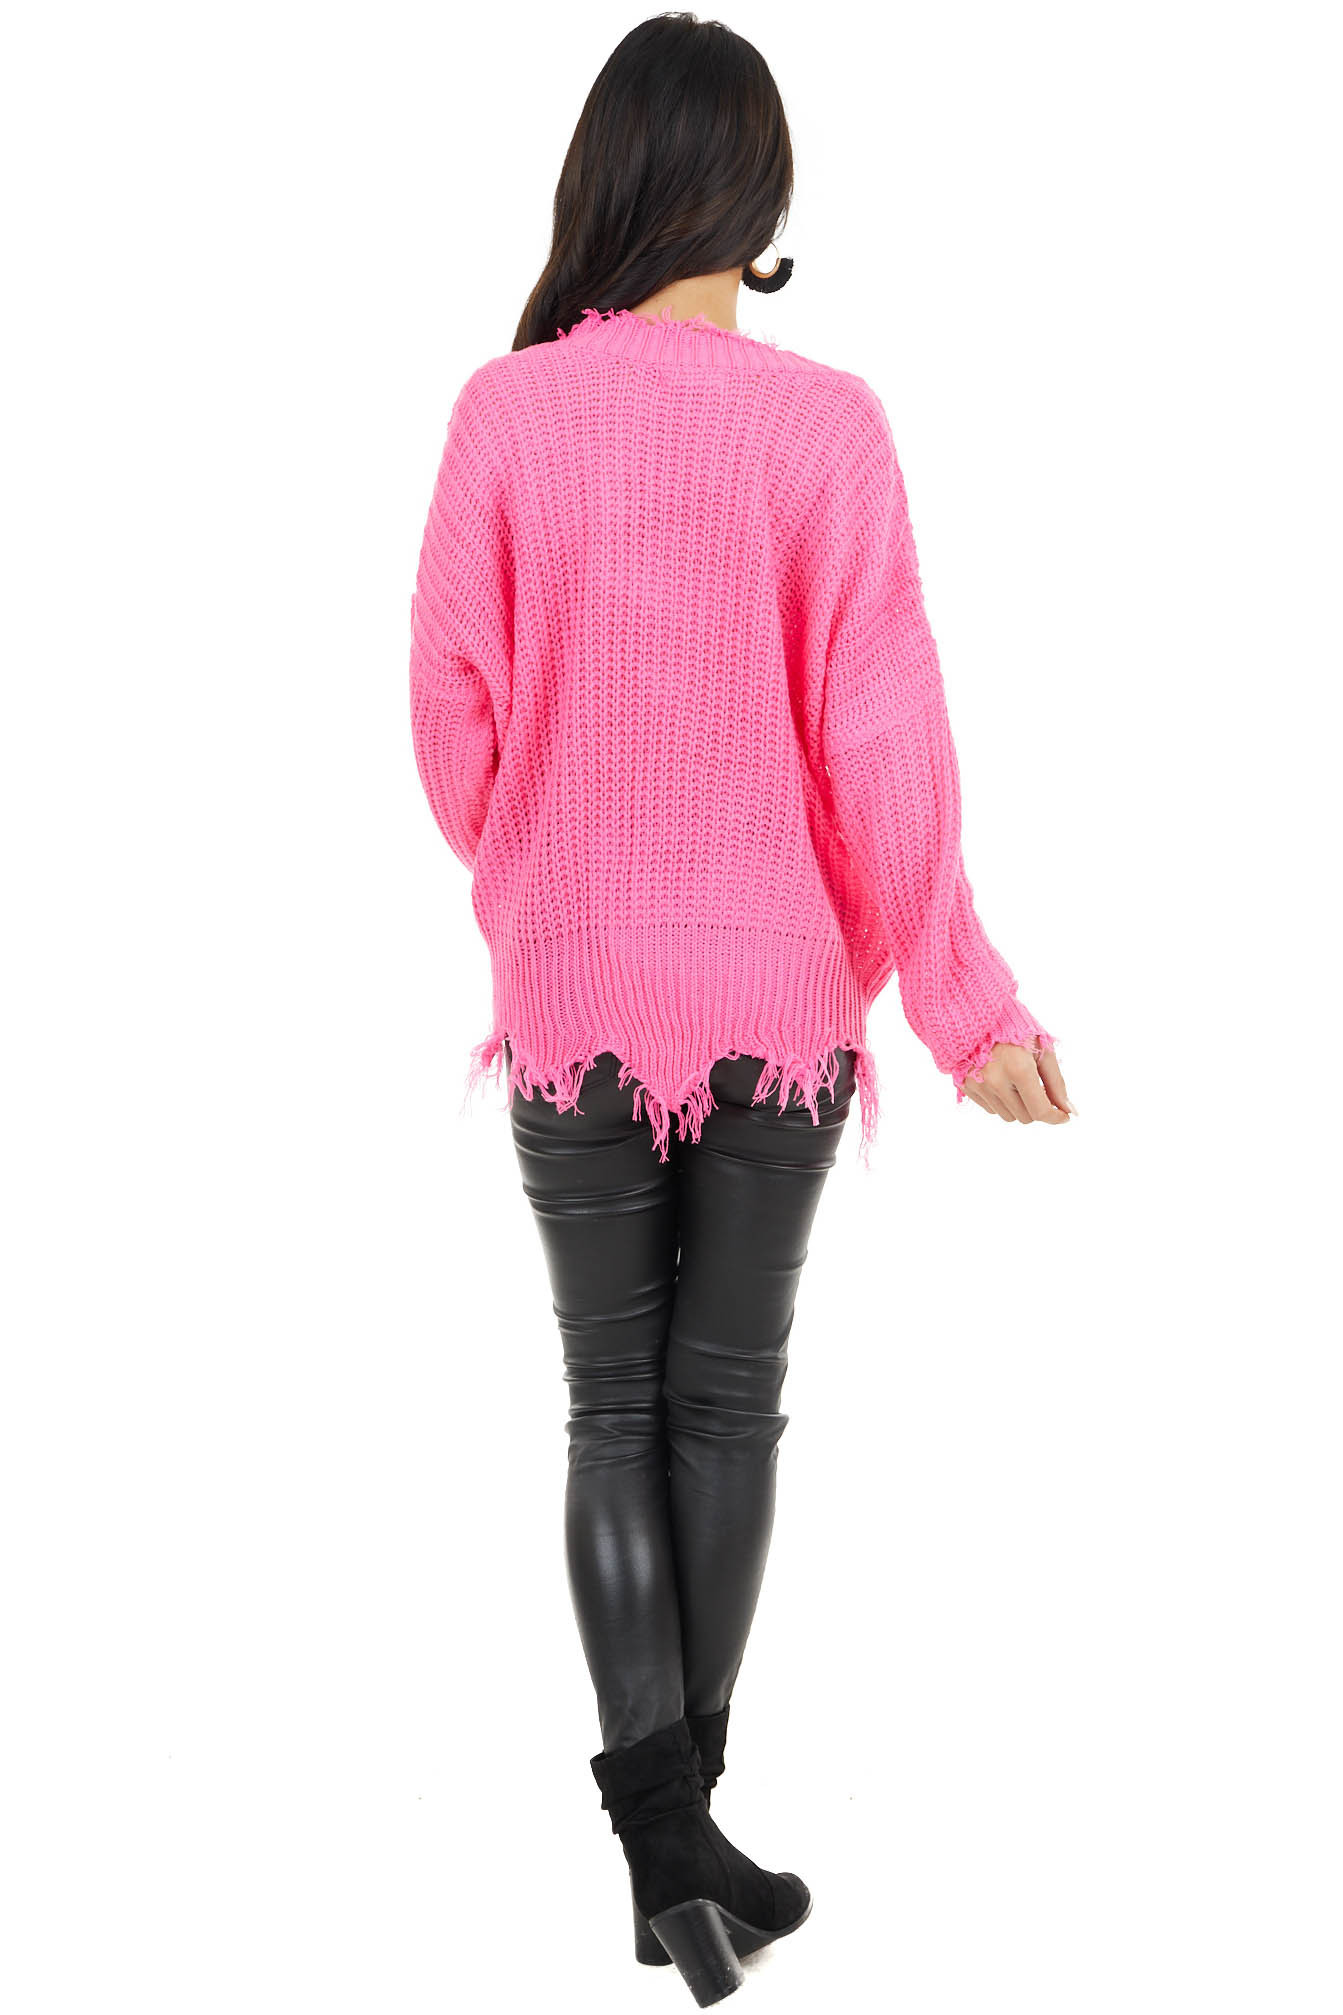 Hot Pink V Neck Knit Sweater with Distressed Details